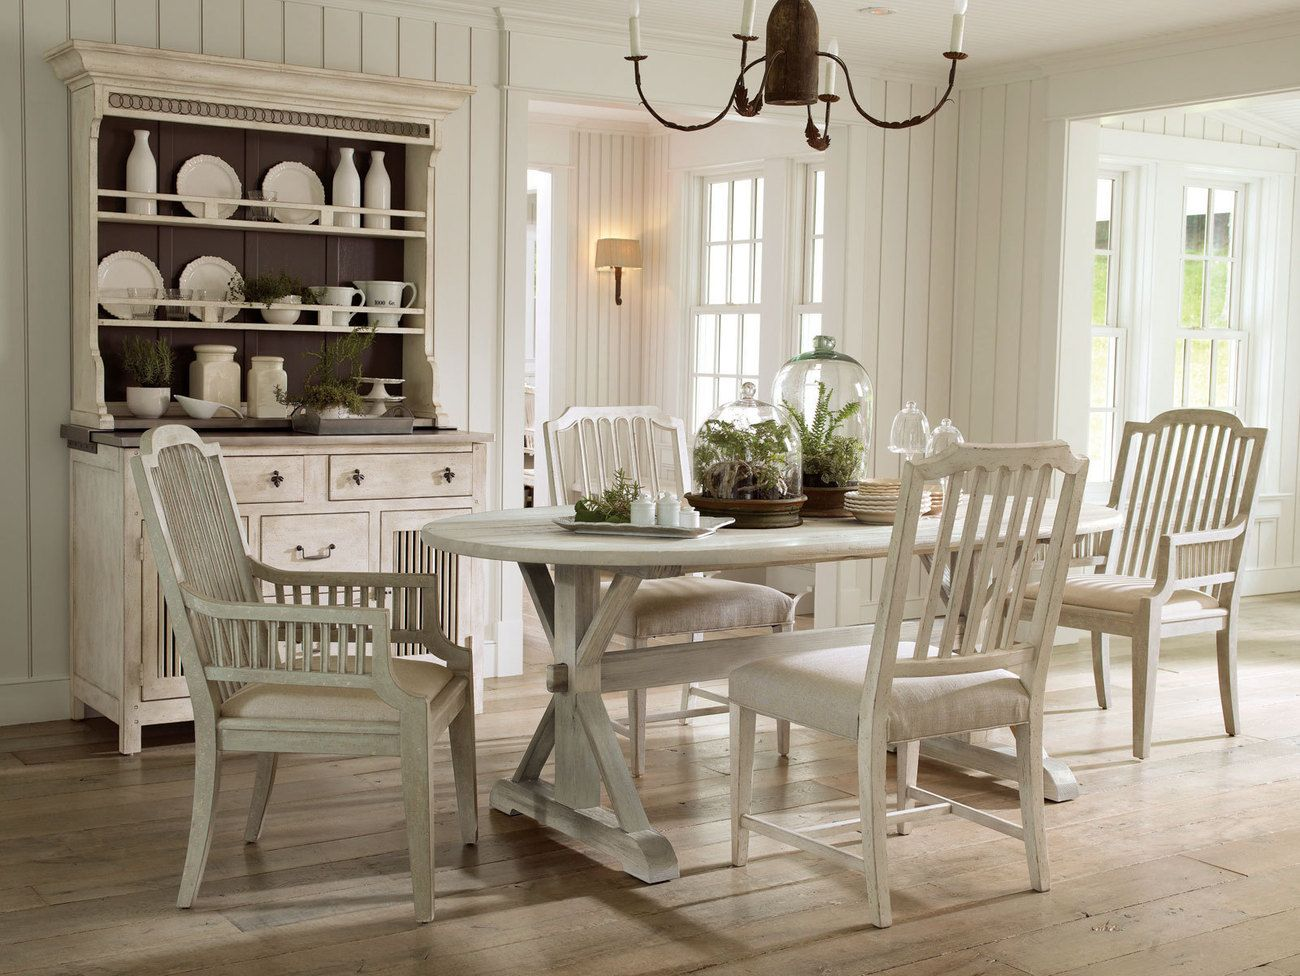 Fontaine5Pcs Country Cottage White Oval Dining Room Table Chairs Gorgeous Oval Dining Room Table And Chairs Design Ideas